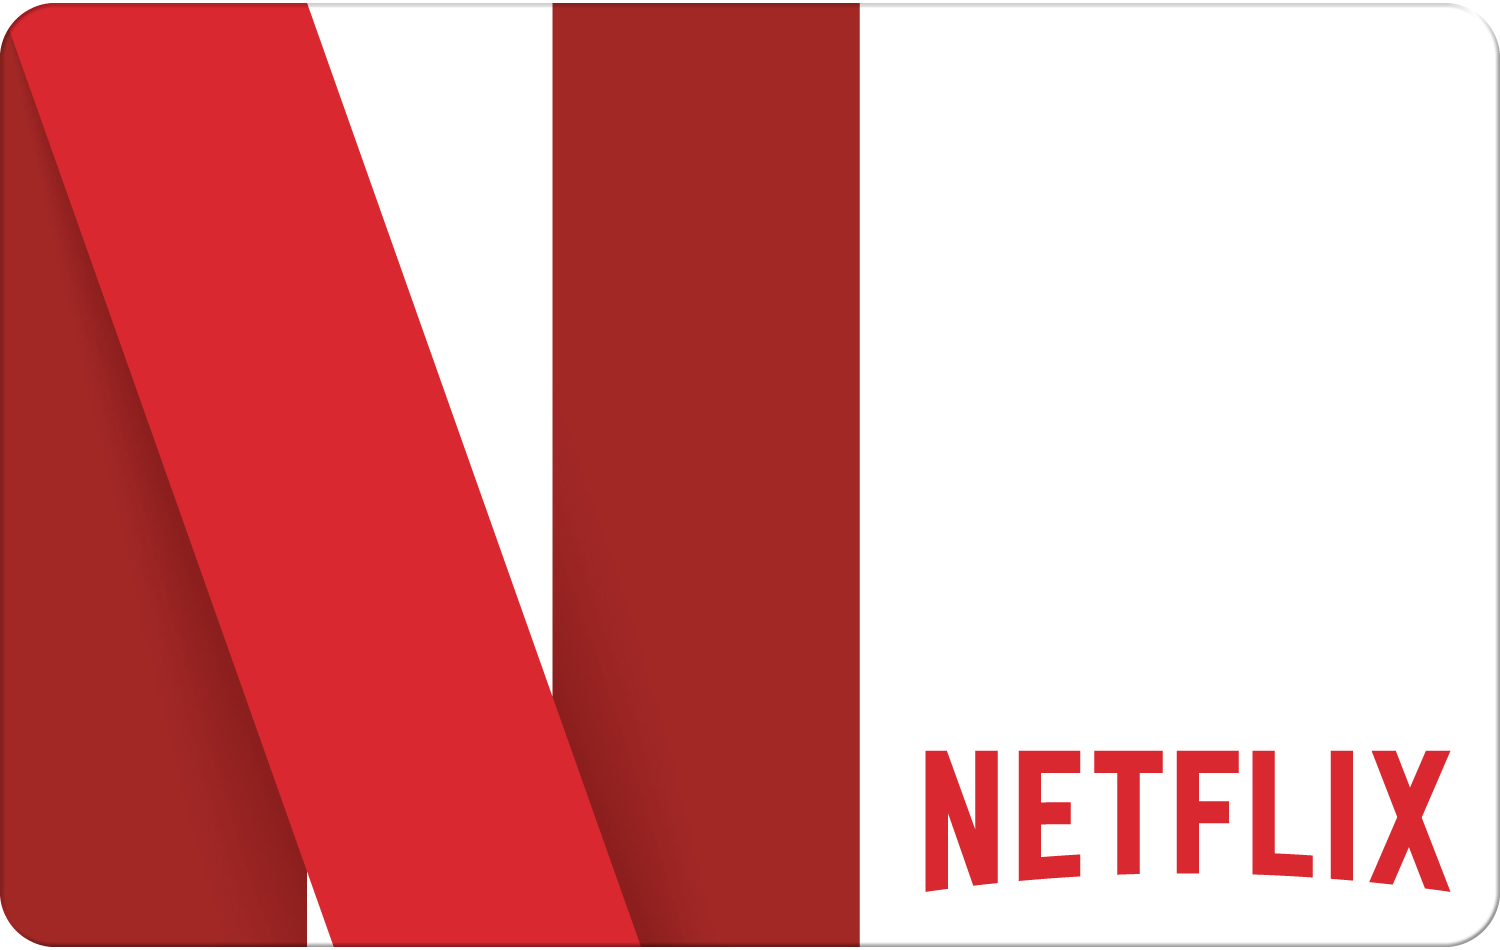 Netflix Gift Code Digital Delivery In Seconds Playstation Network Card 50 Canada Pcgamesupply Product